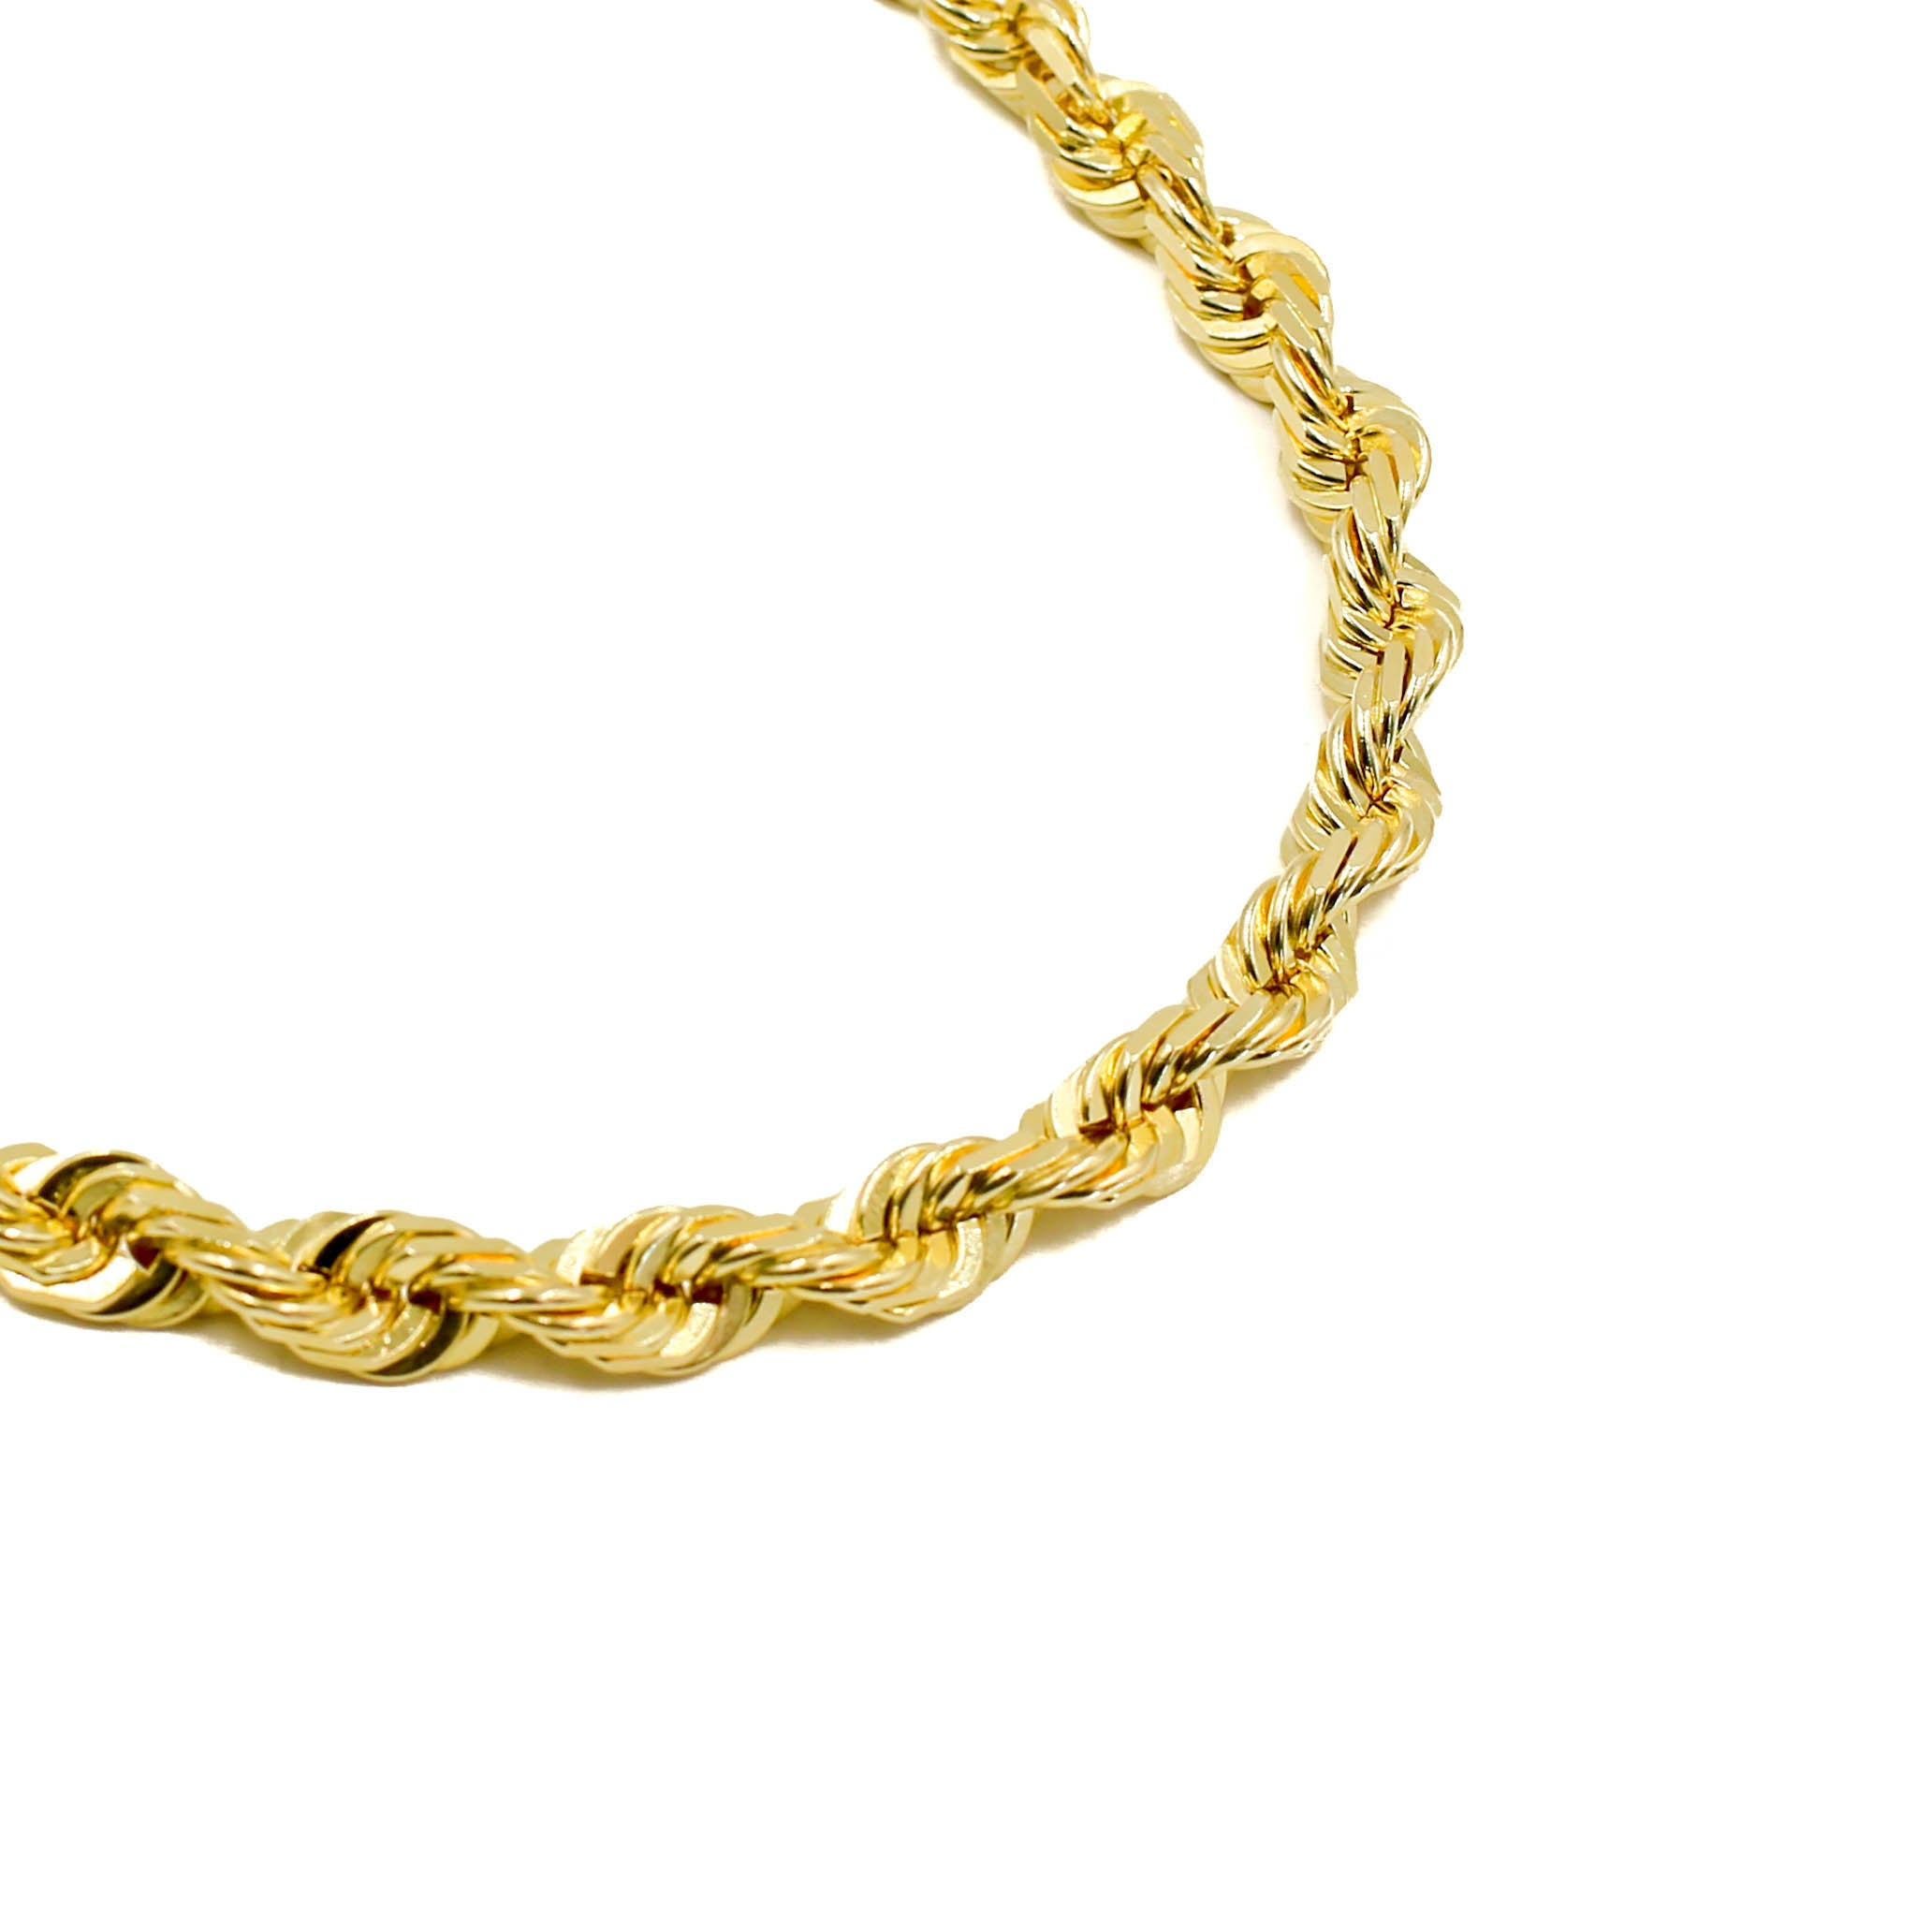 ec3b0d6030089 Gold Teeth Canada - Shop Different Gold and Diamond Chains